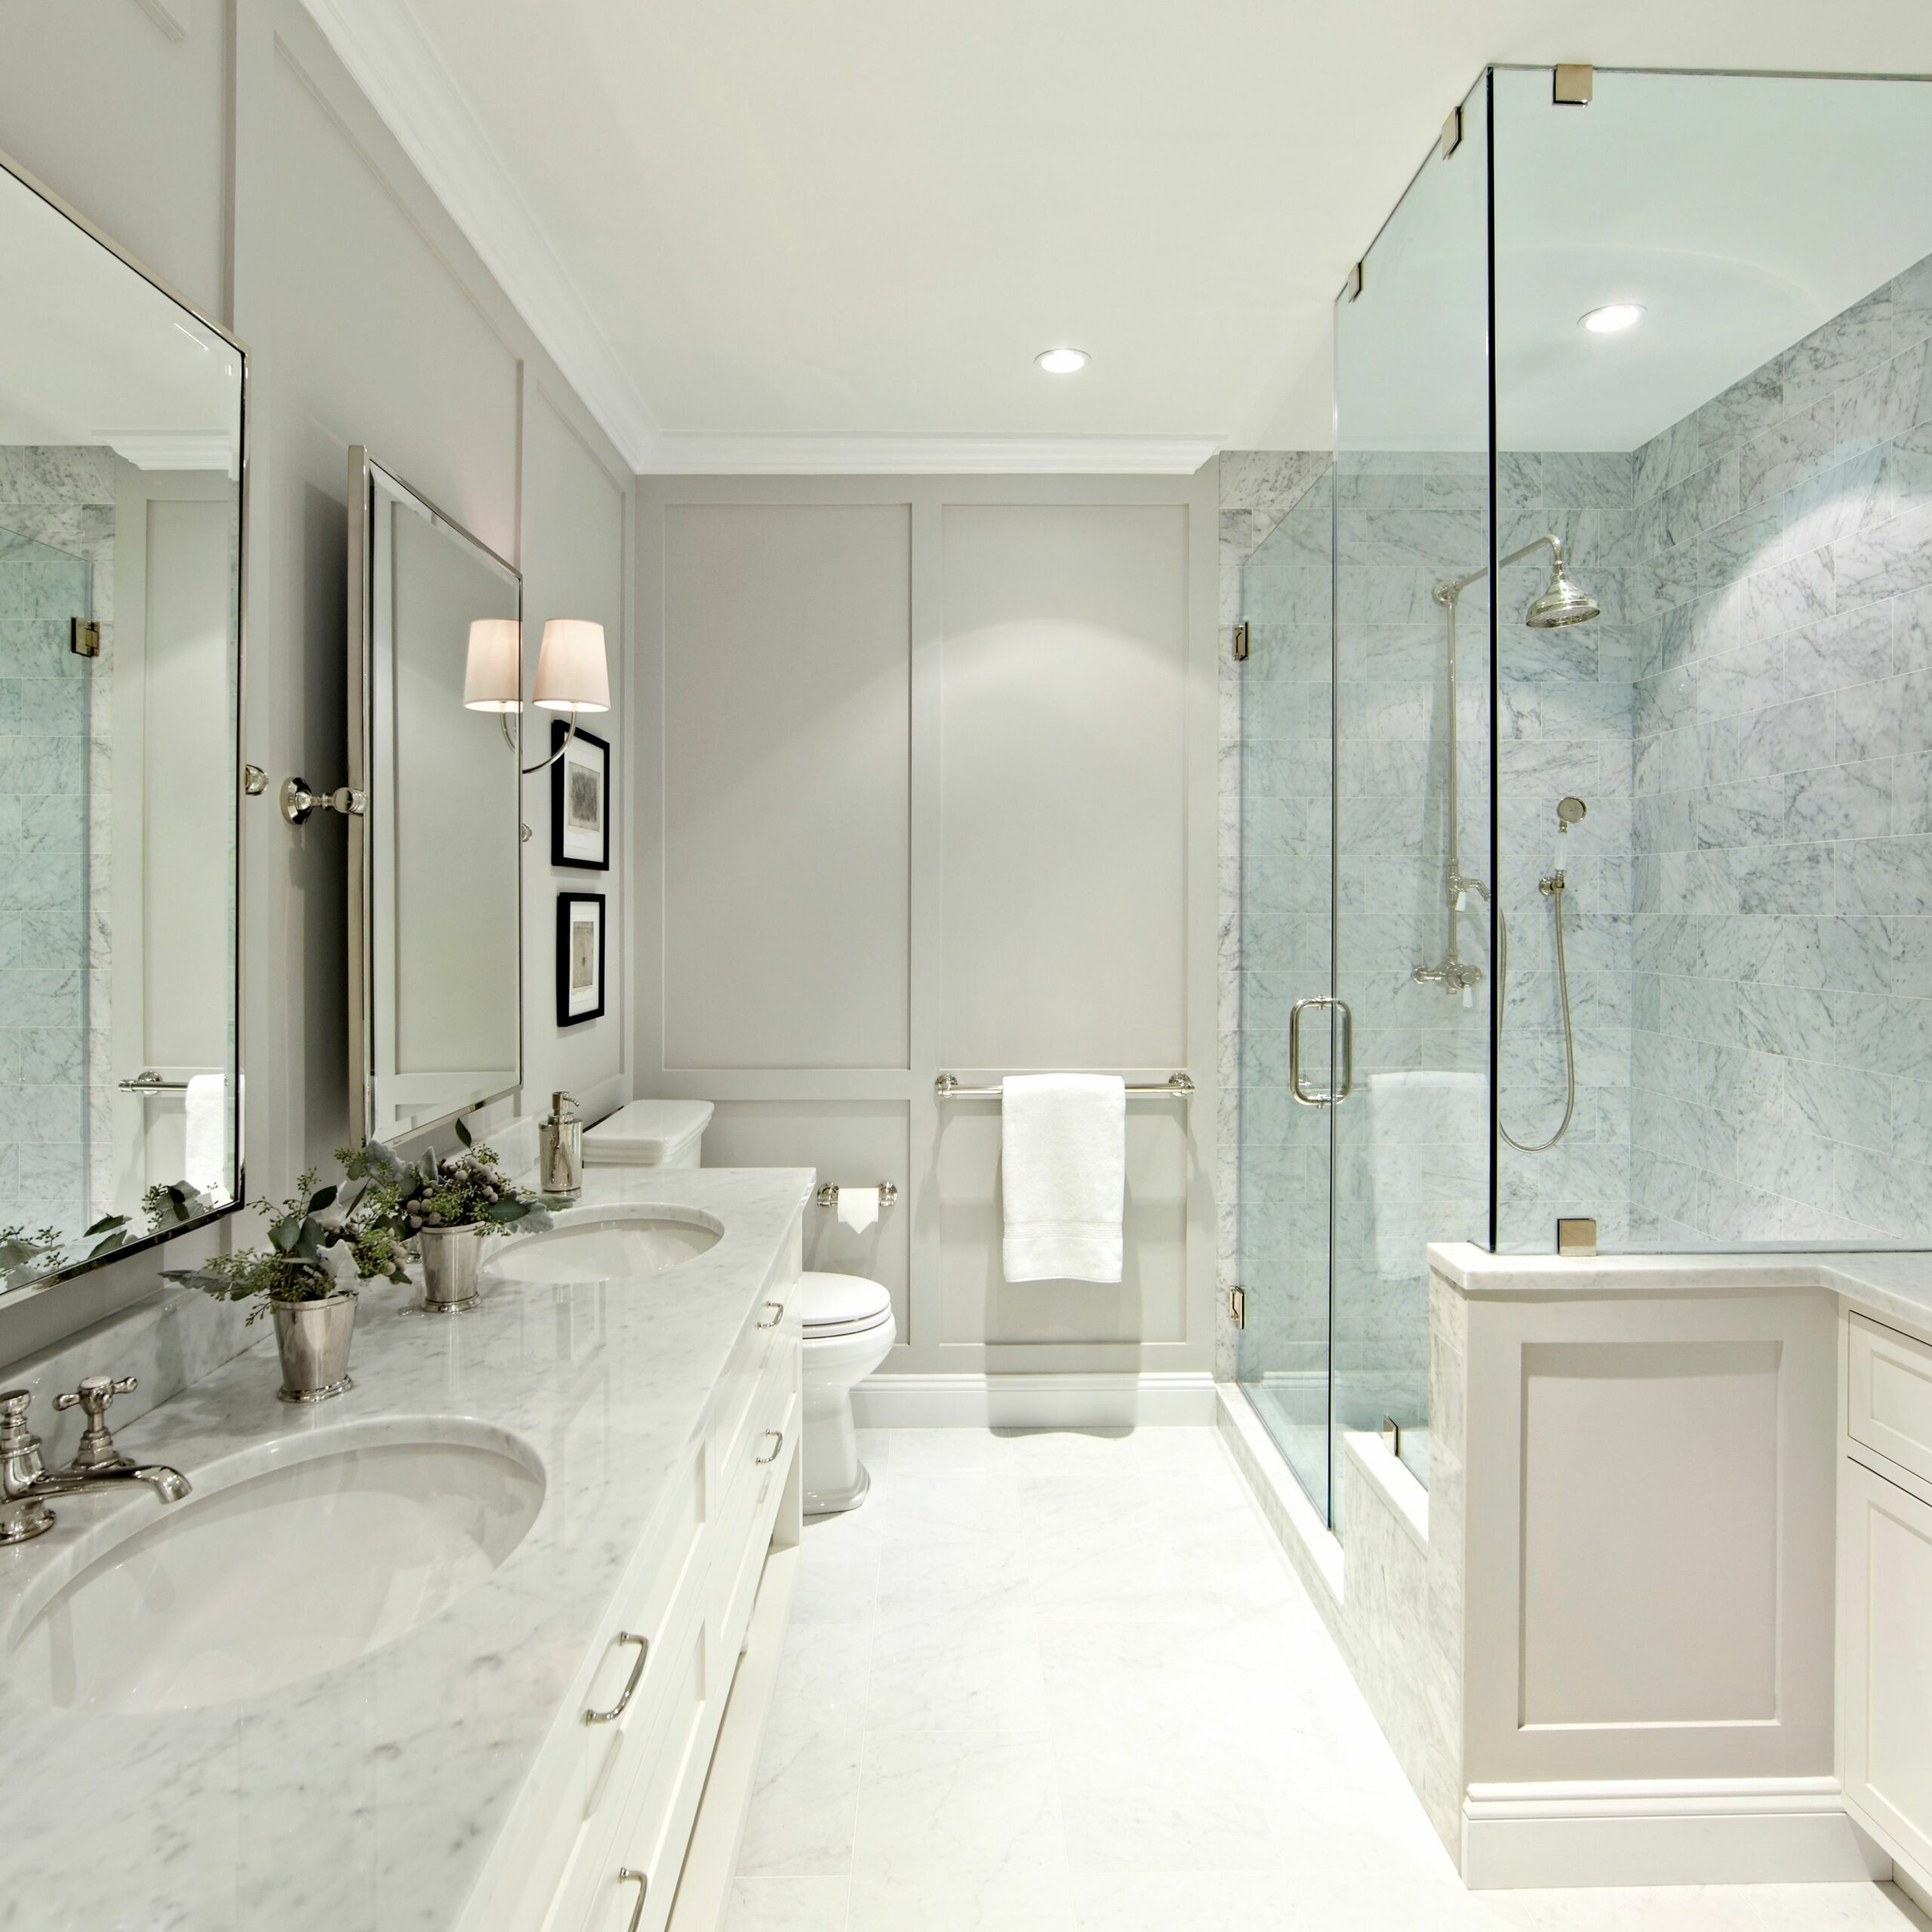 9 Best Bathroom Makeovers: Before & After Bathroom Remodels ..